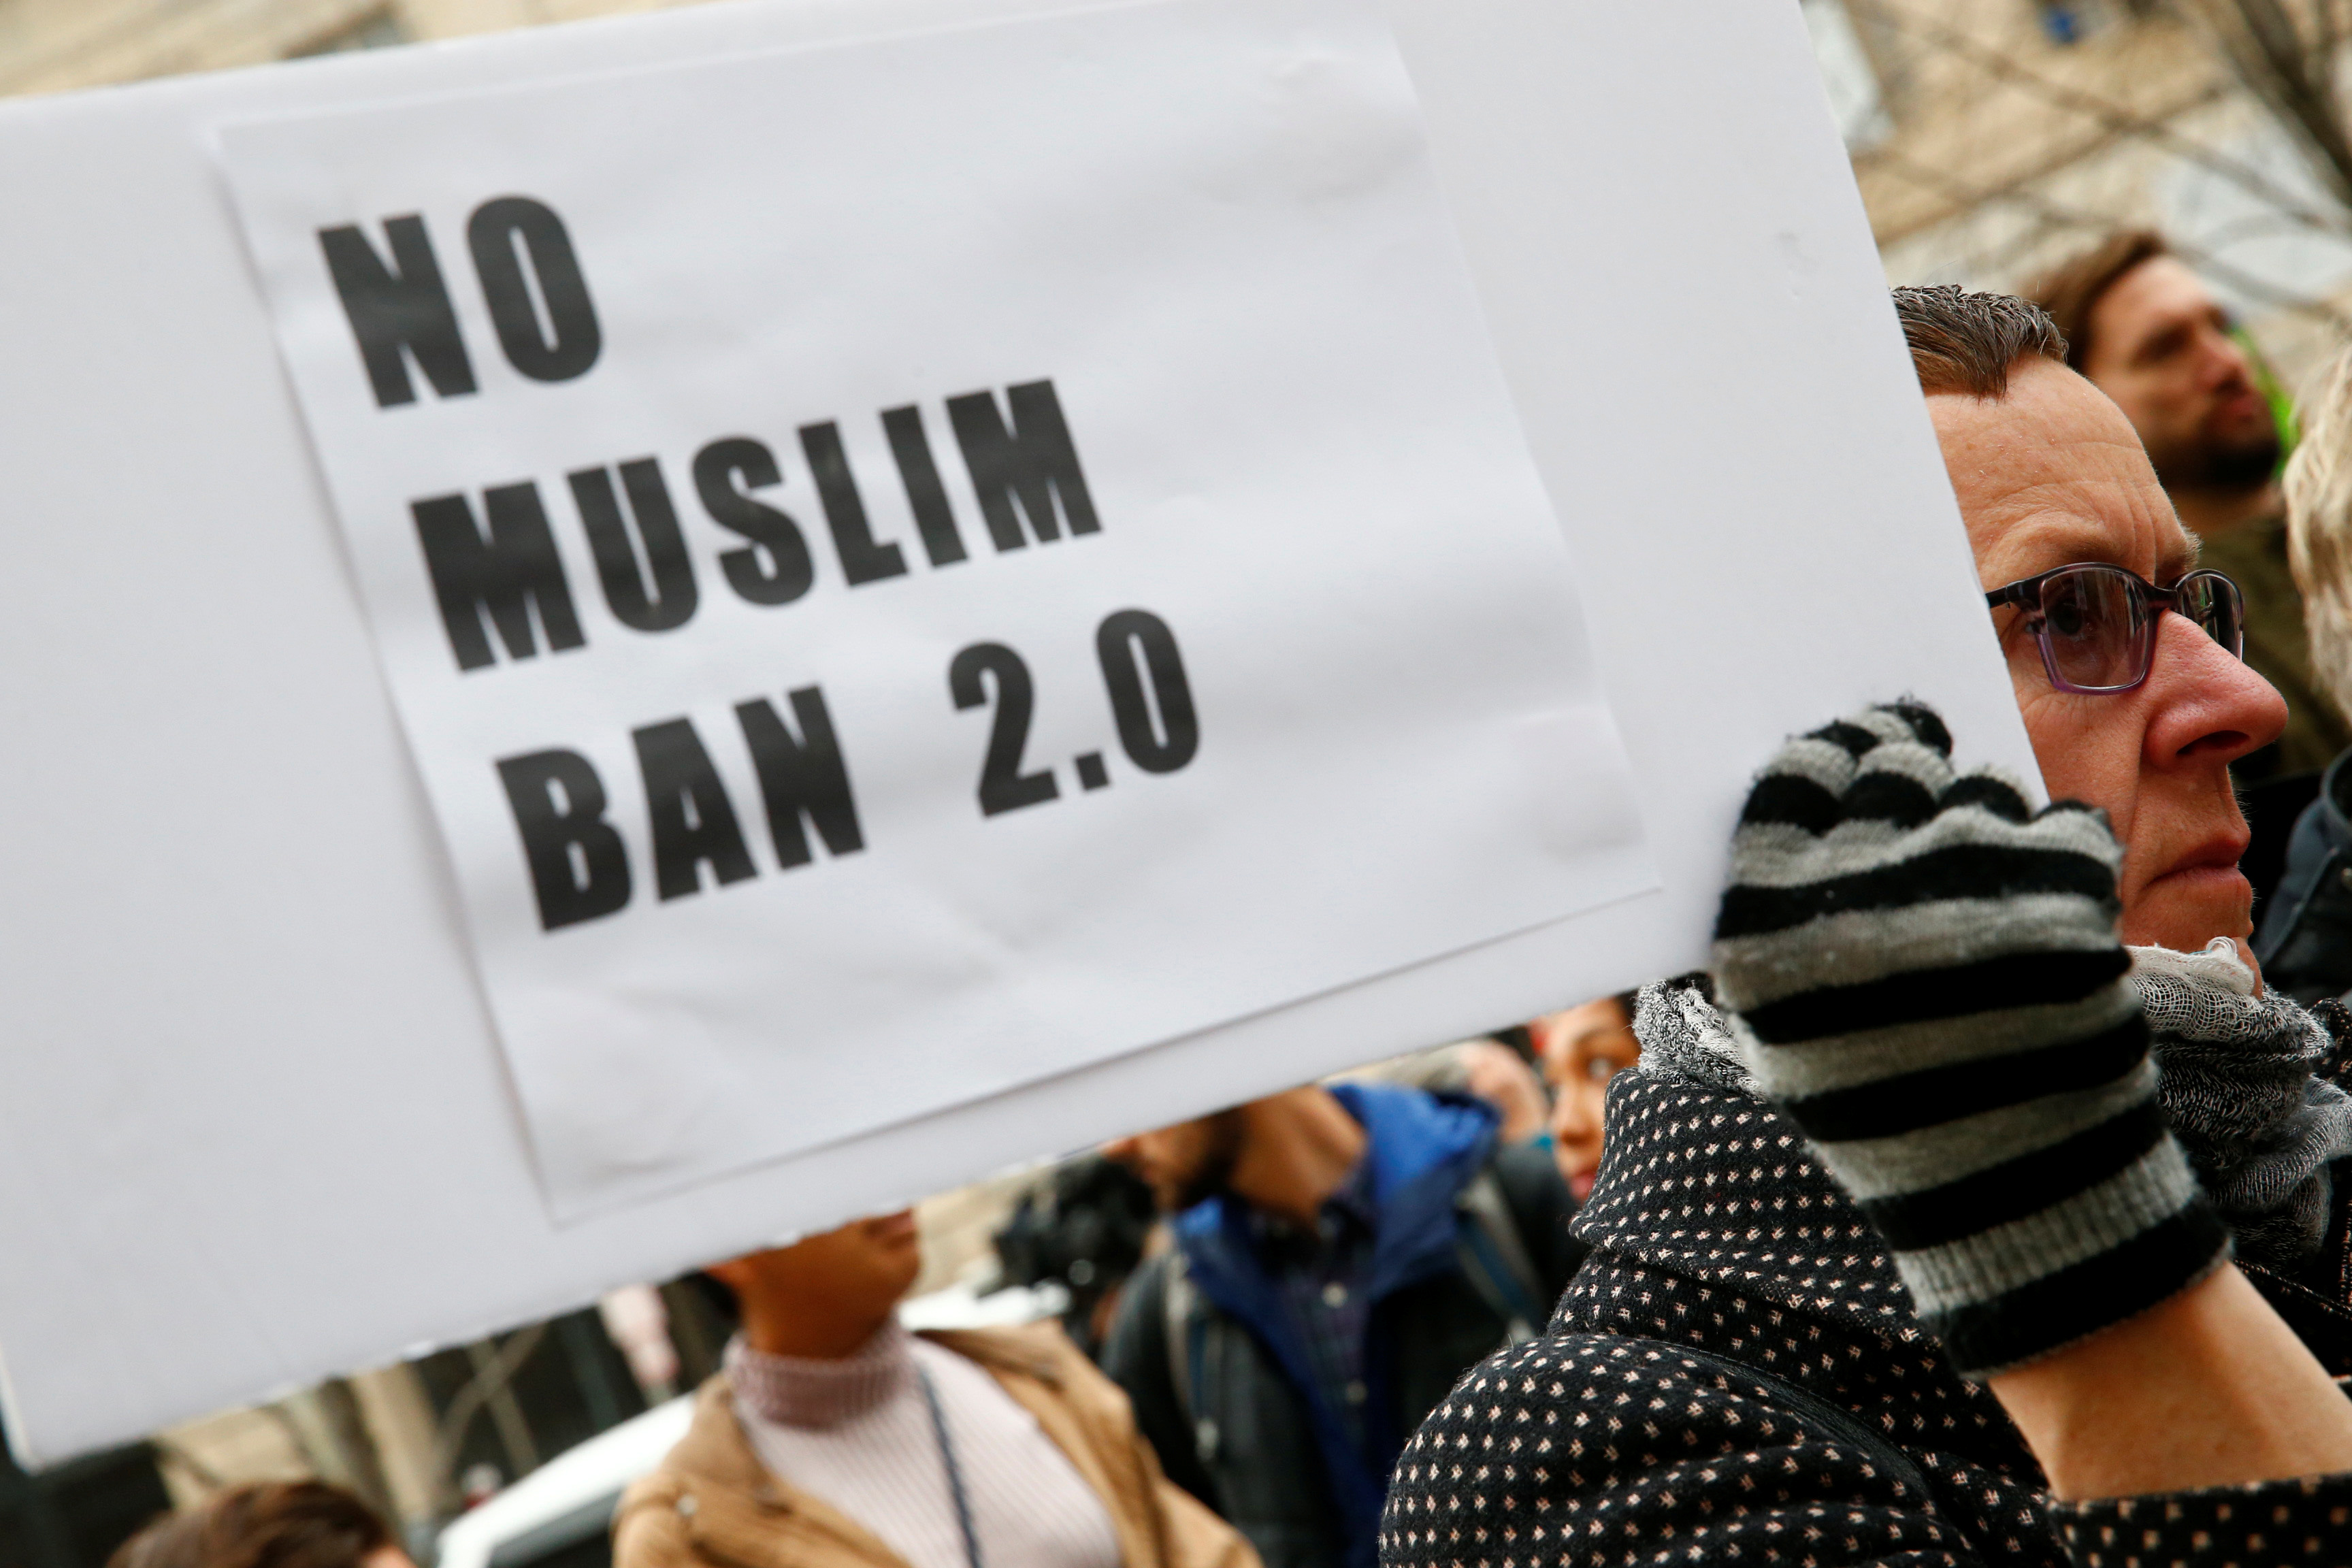 Immigration activists rally against the Trump administration's new ban against travelers from six Muslim-majority nations